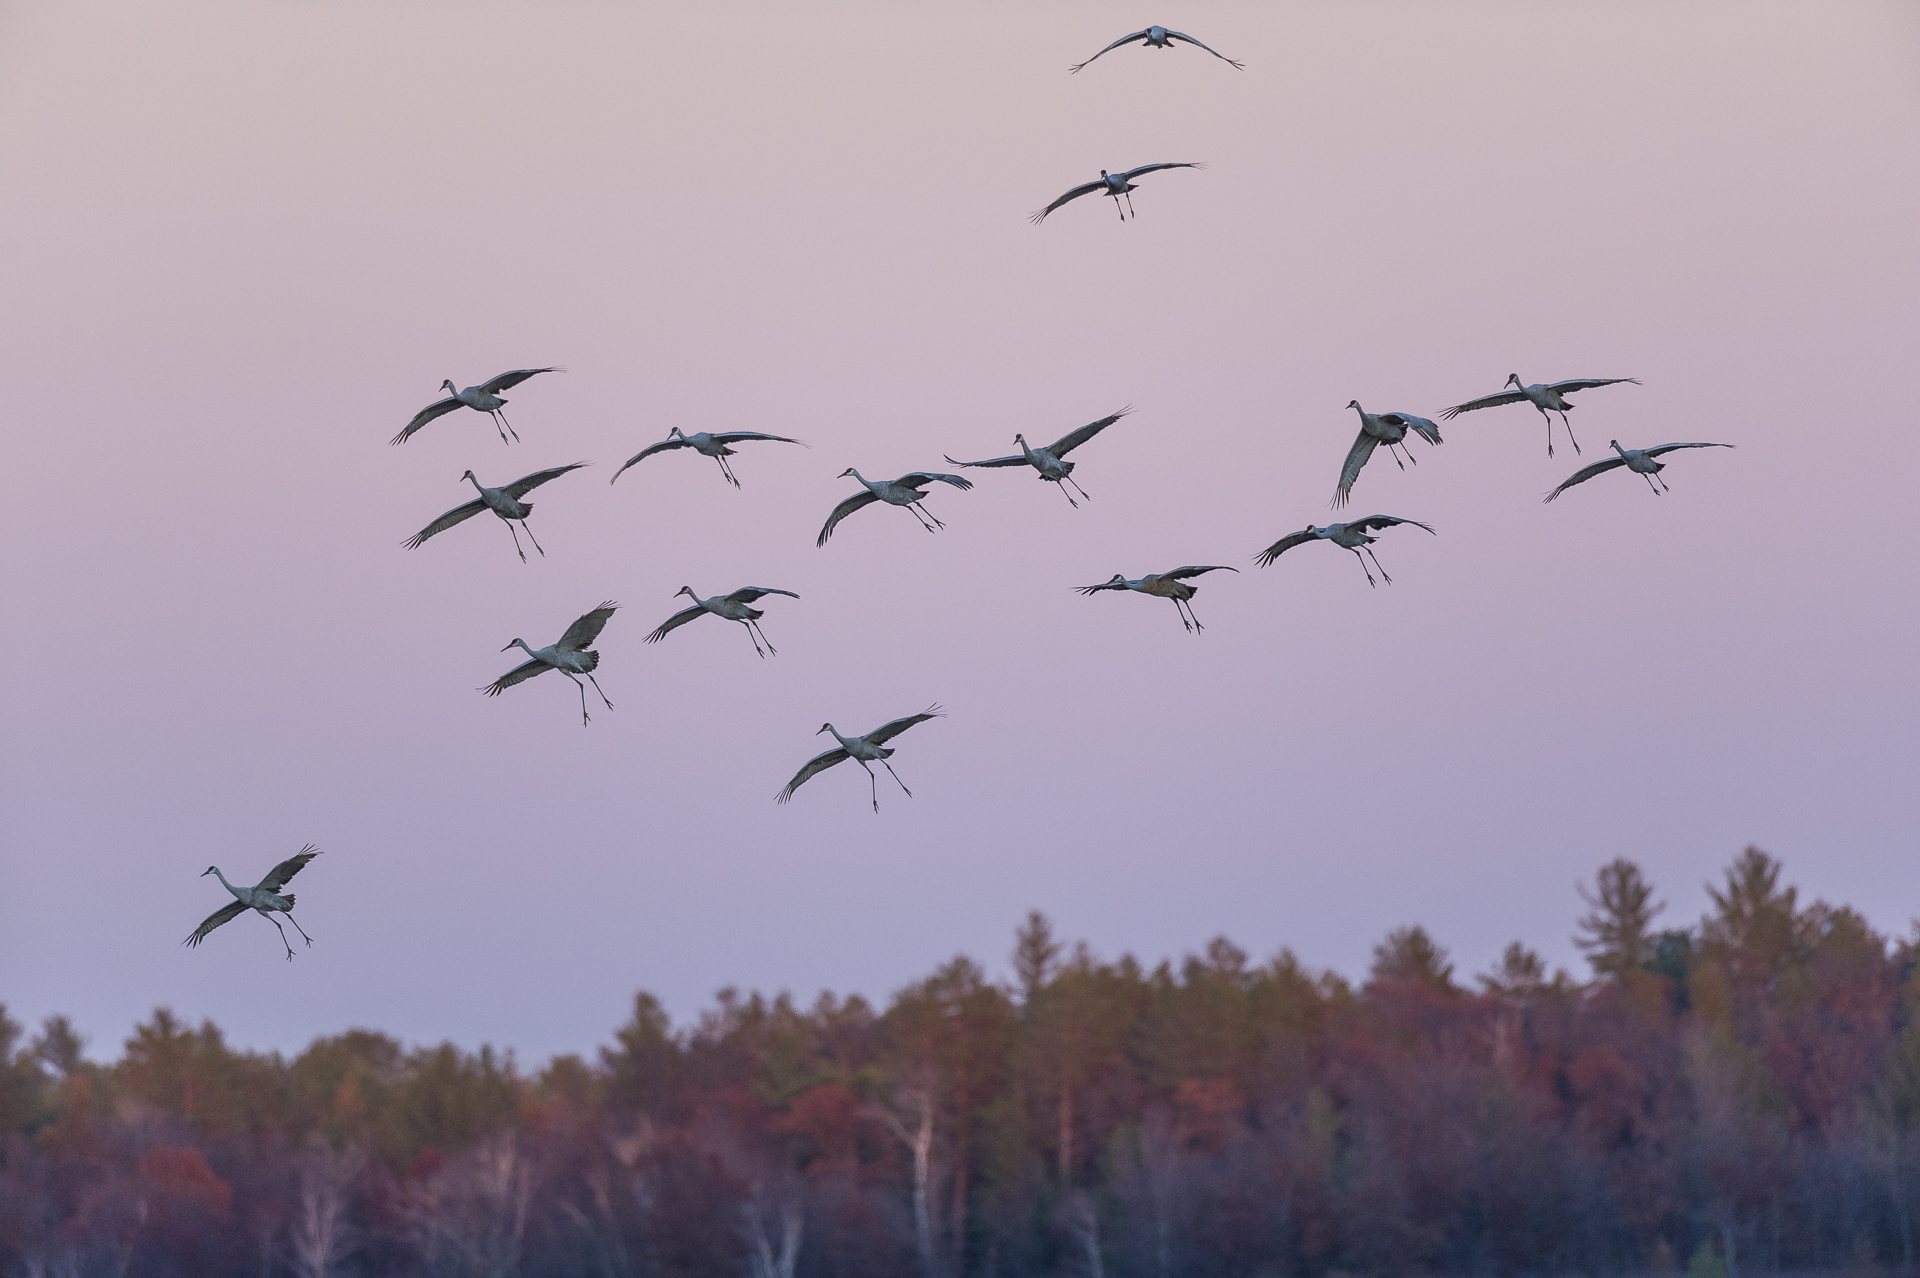 Sandhill cranes coming down to roost in wetland at sunset.